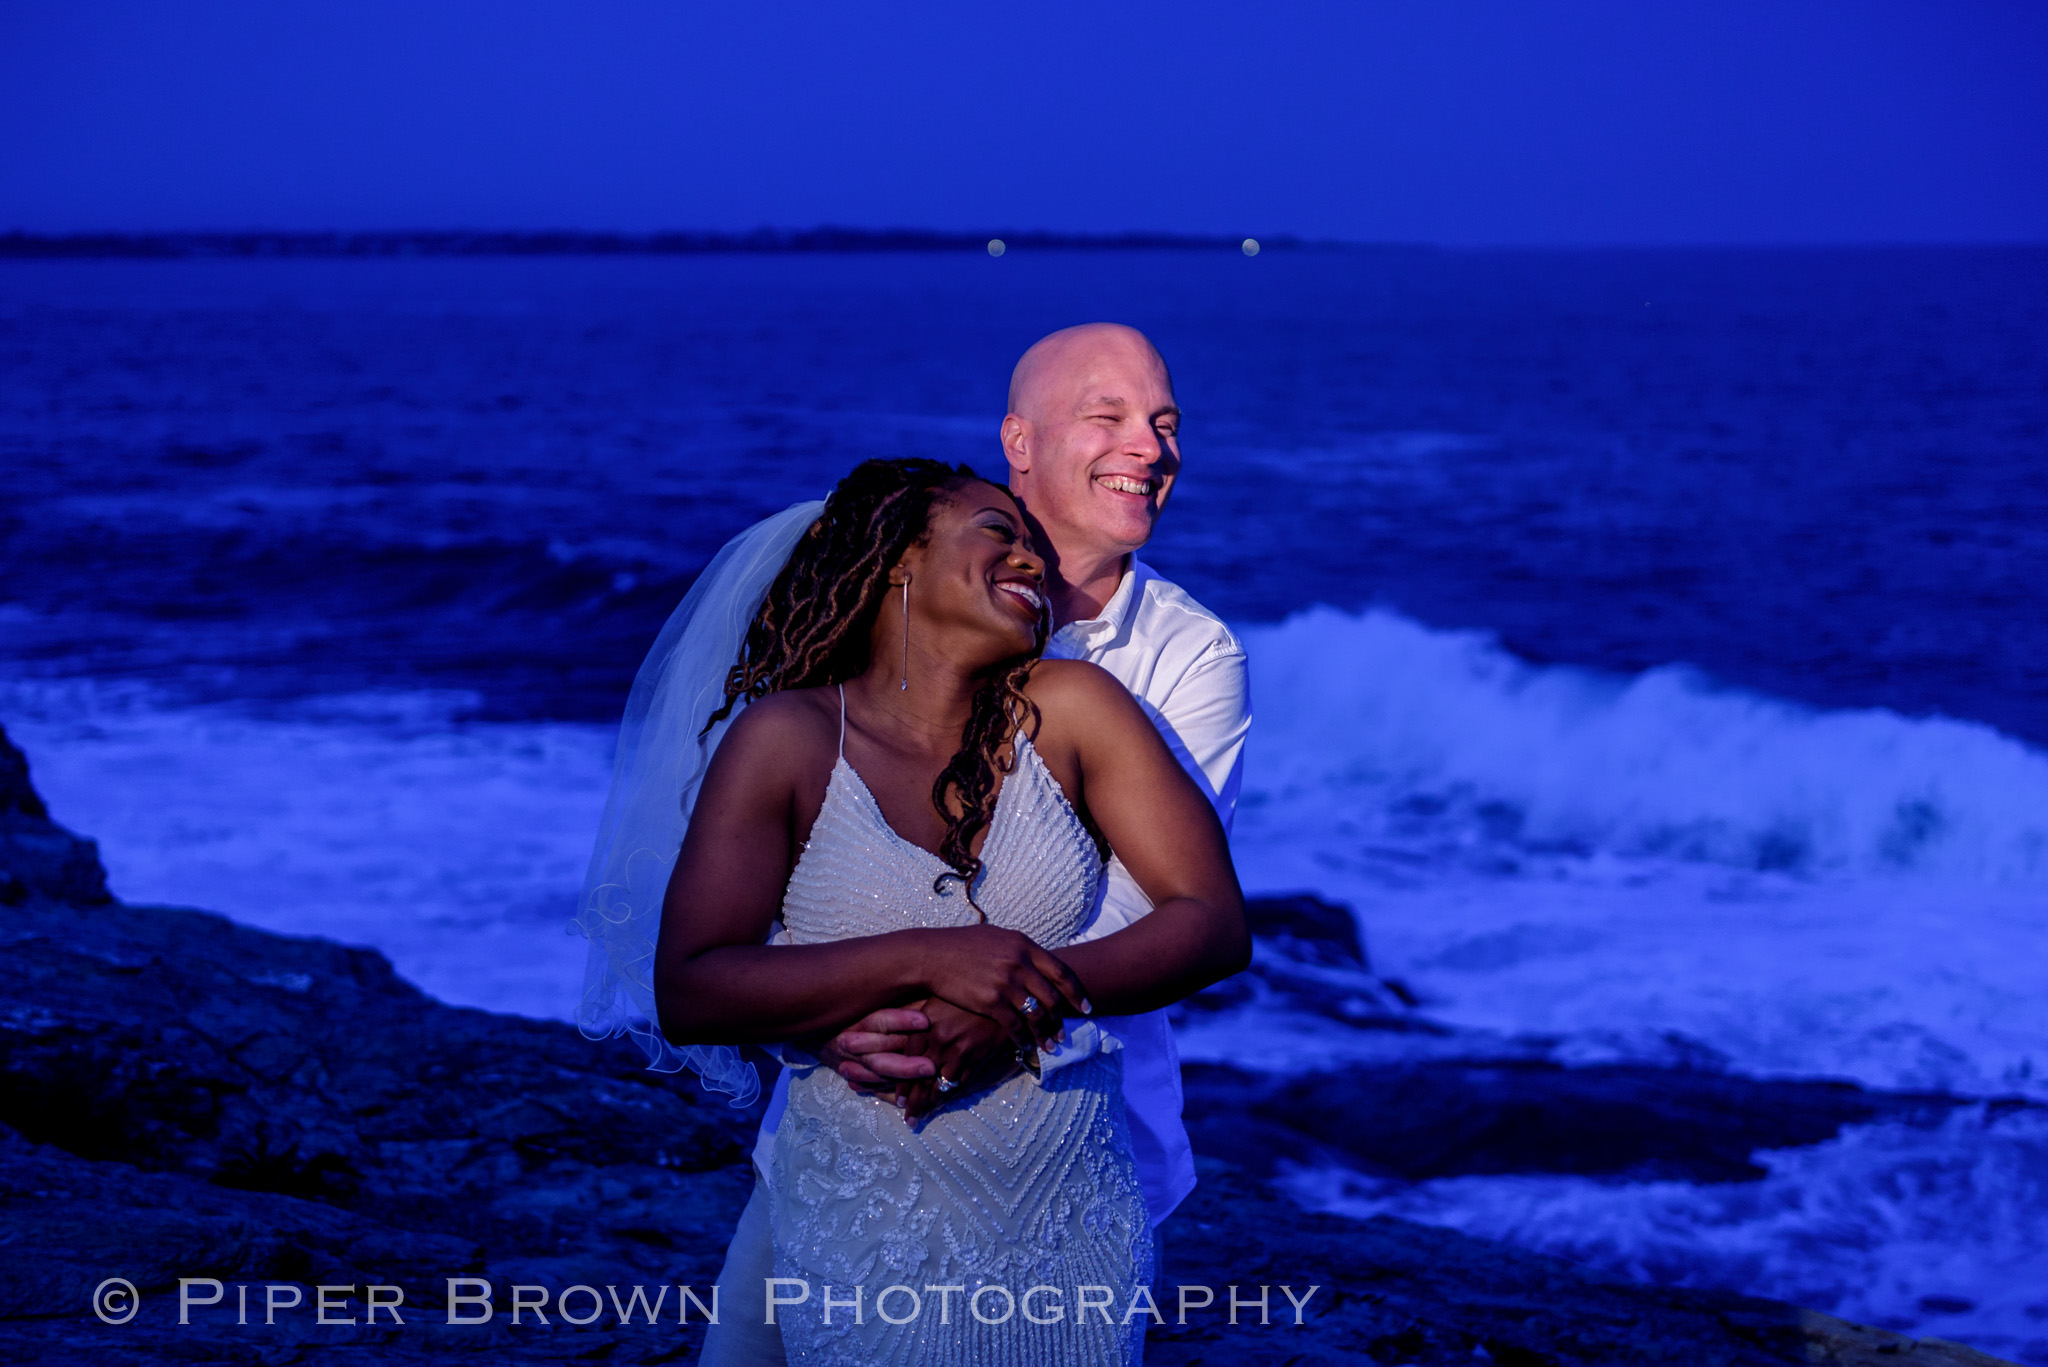 Black smiling woman in a beaded shoe-string wedding dress embraced by laughing white bald man with mean surf behind them.